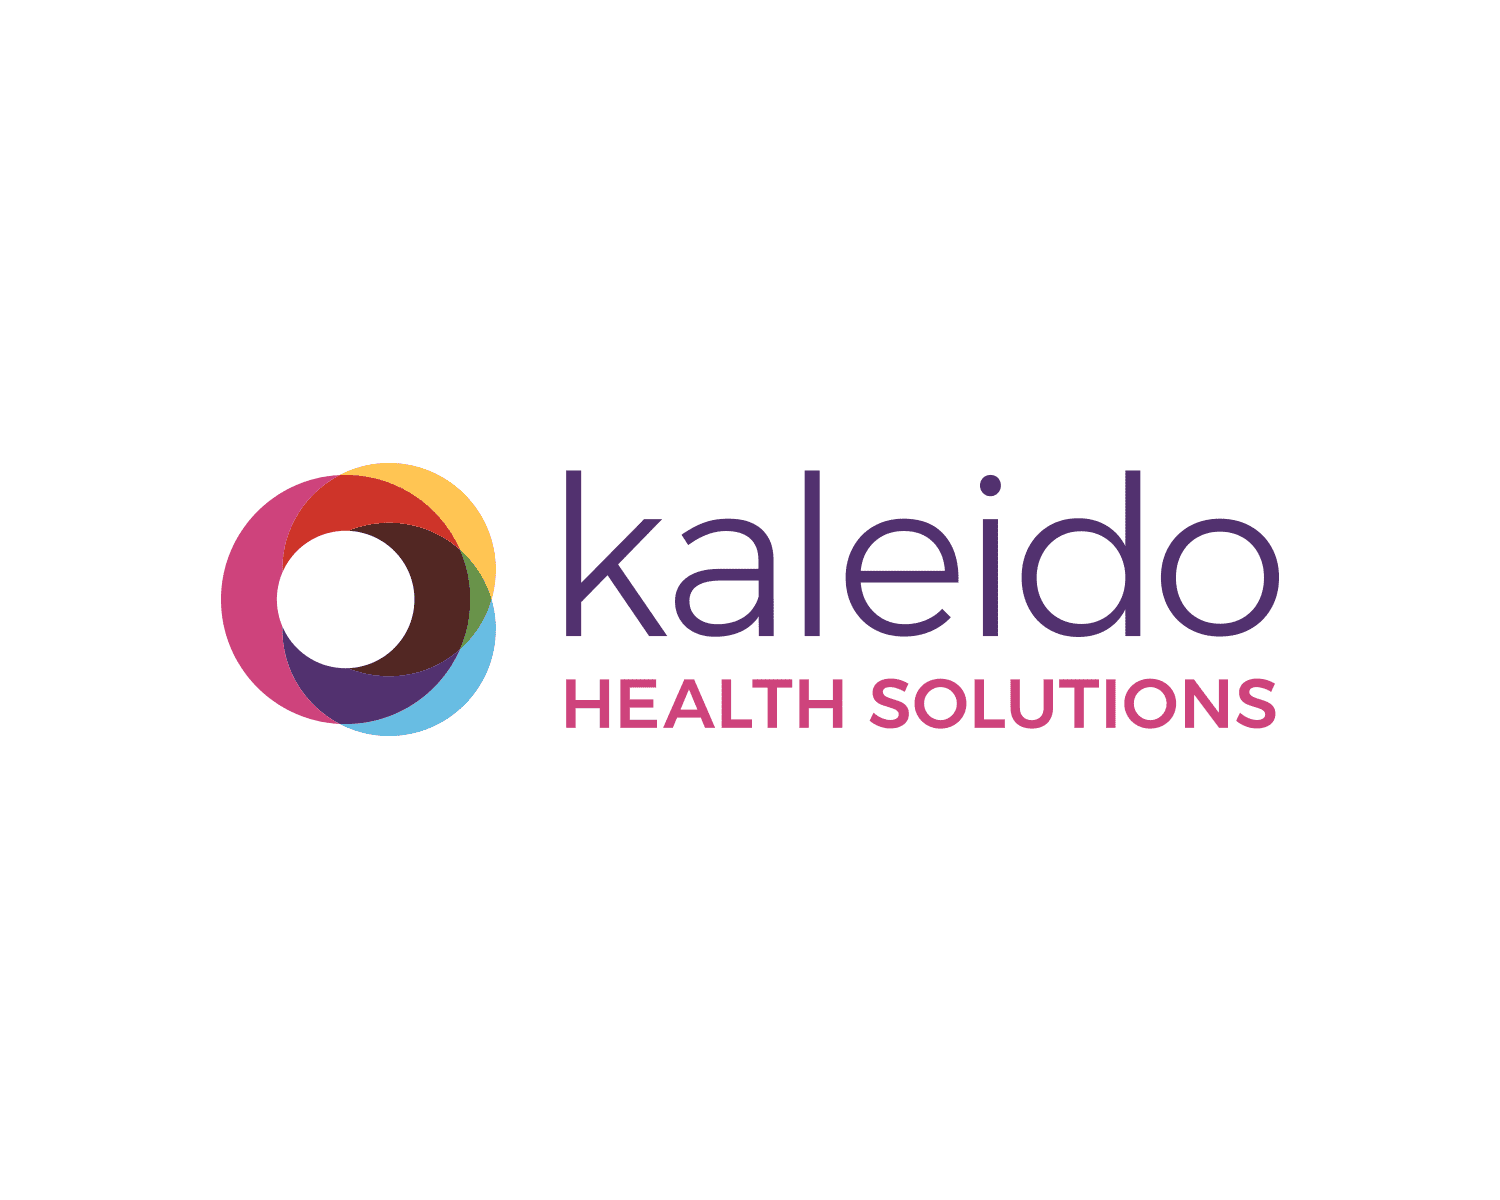 Kaleido Branding and Website Development